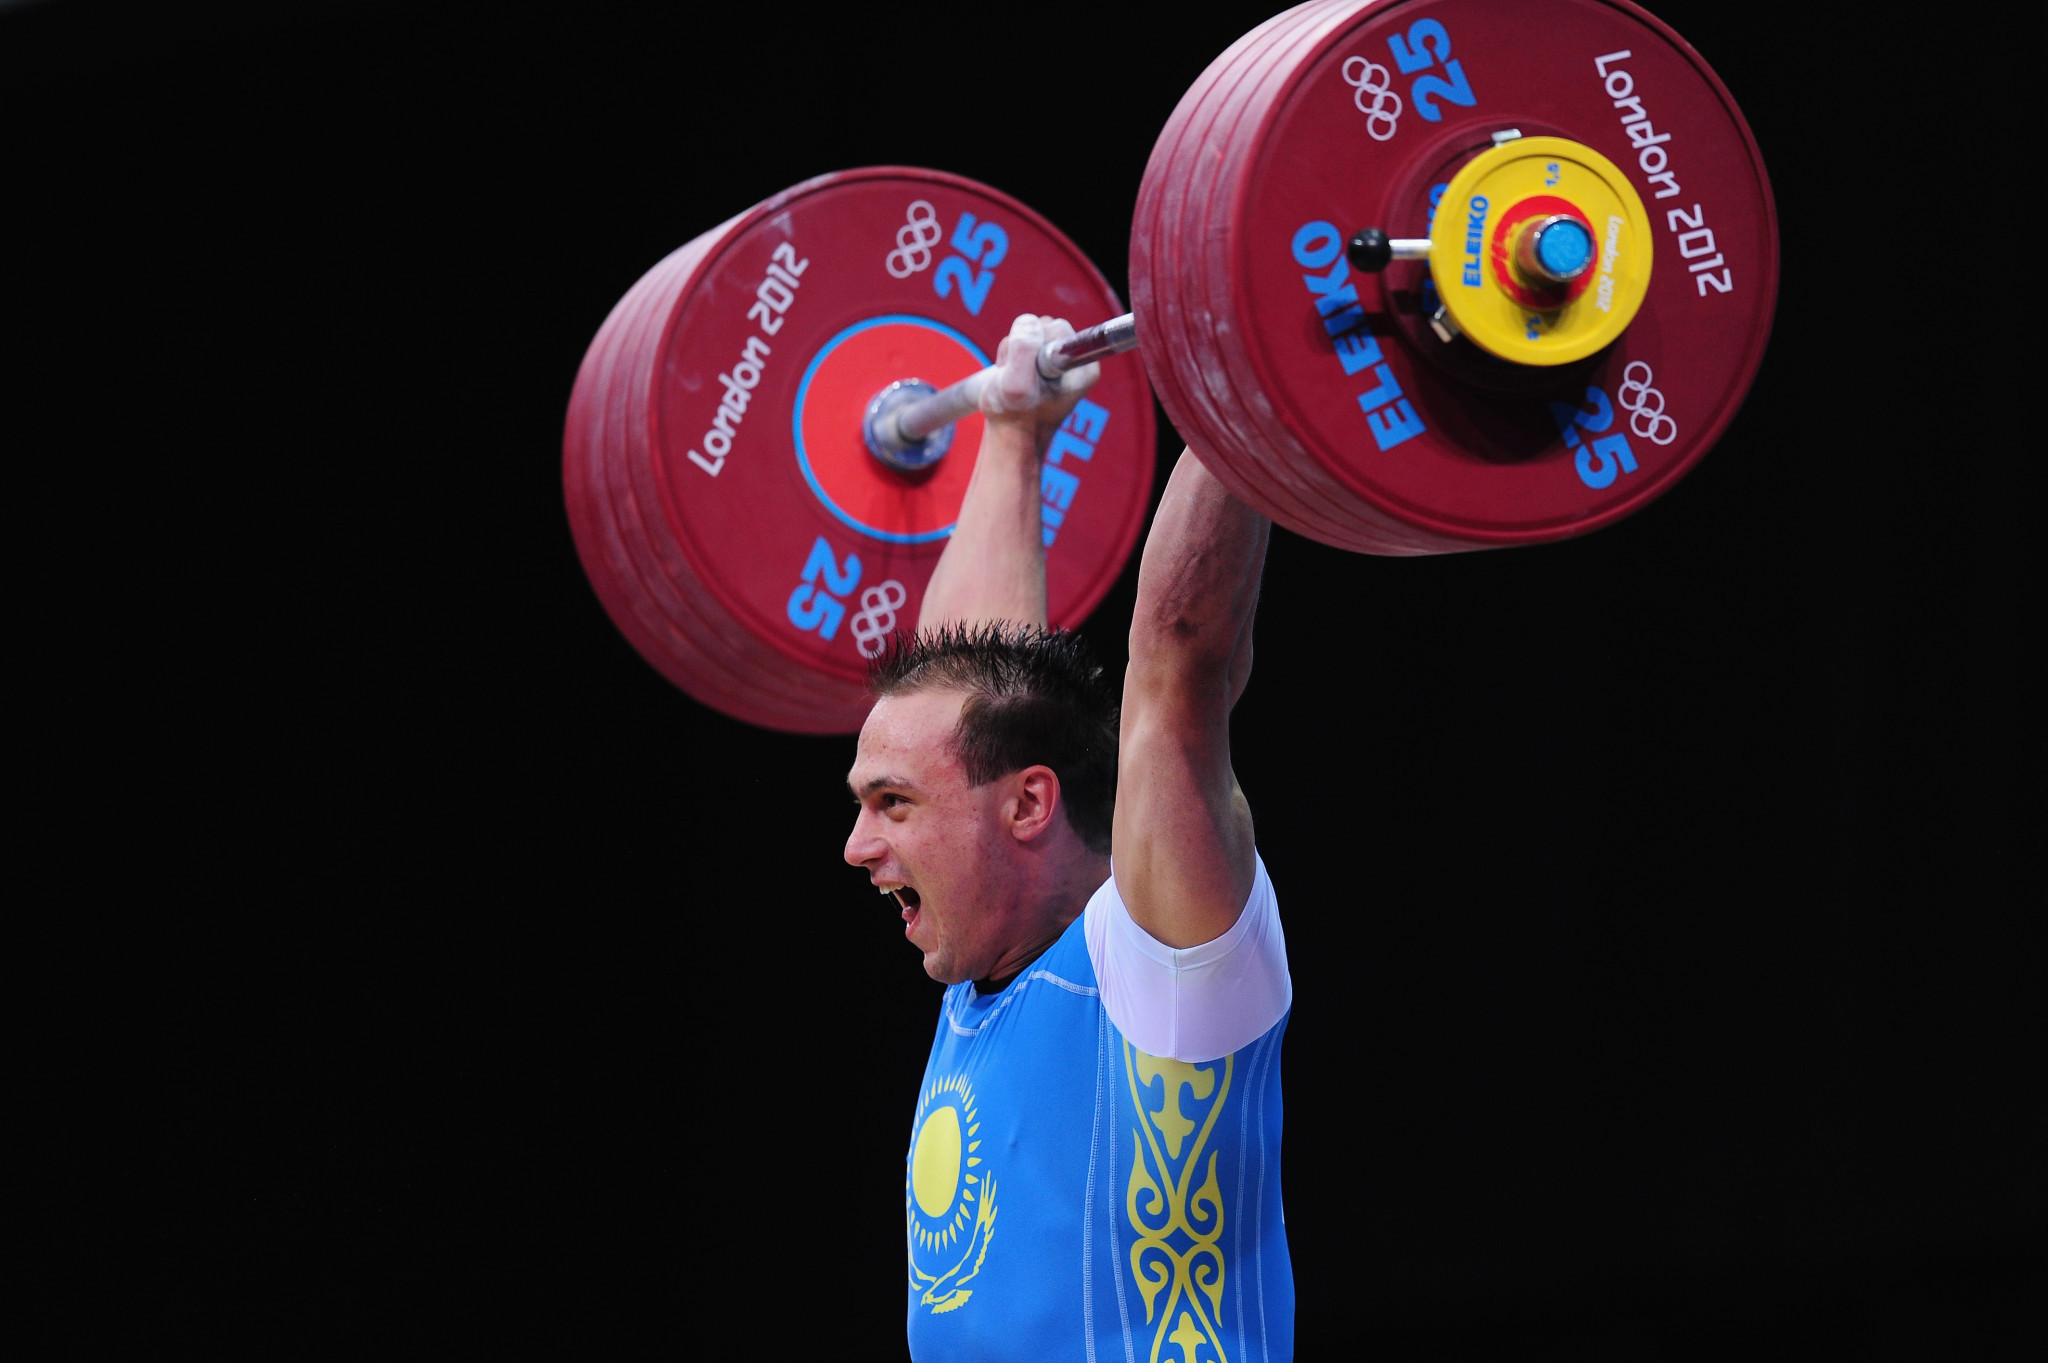 Ilya Ilyin has brought his controversial career to an end ©Getty Images